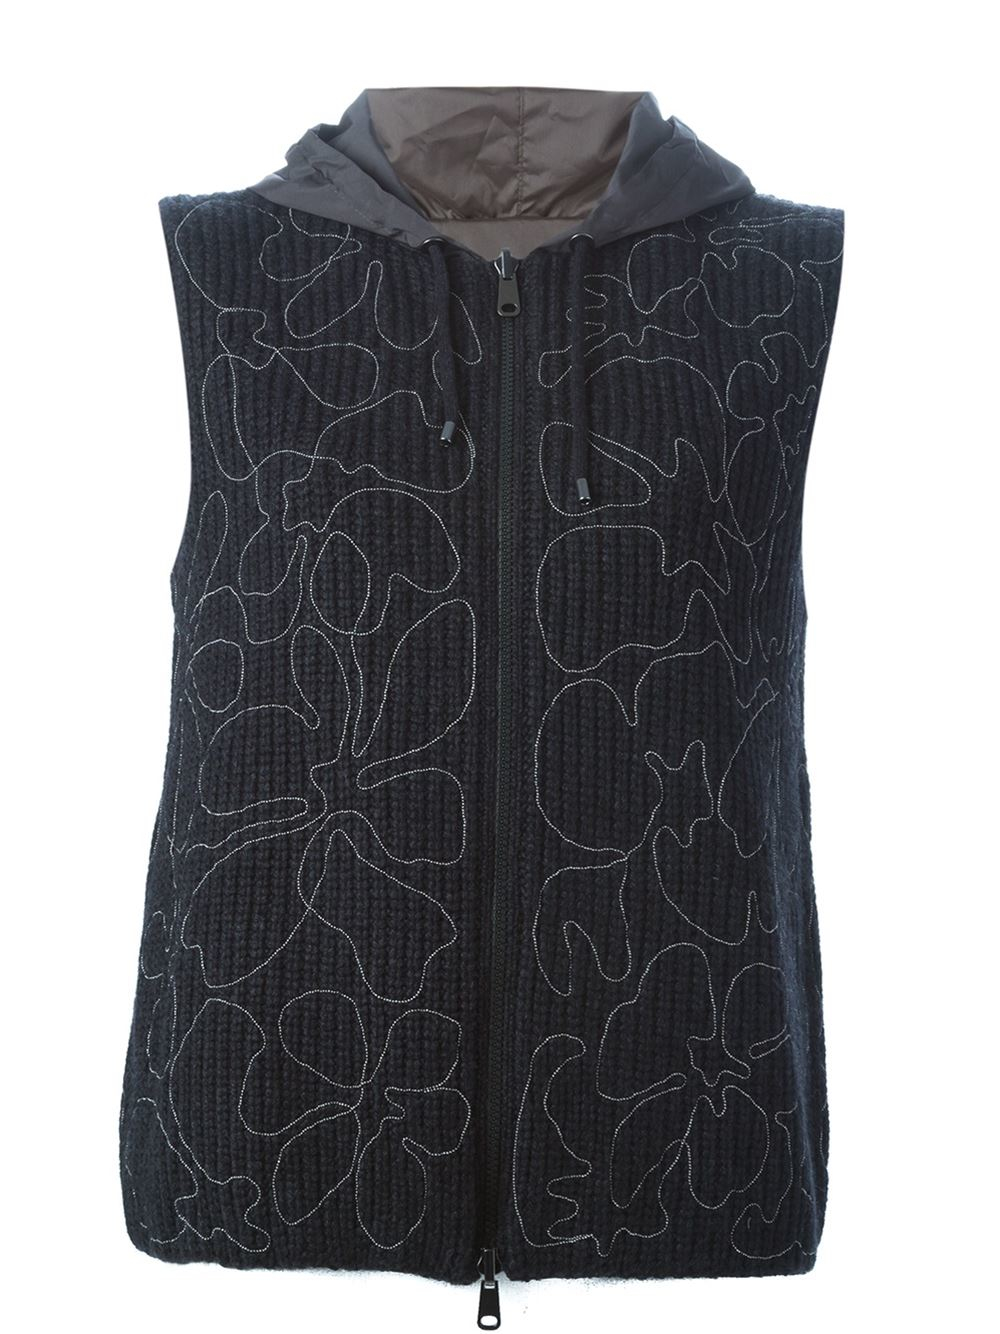 Knitted Hooded Vest Pattern : Brunello cucinell Reversible Knitted Hooded Vest in Black Lyst